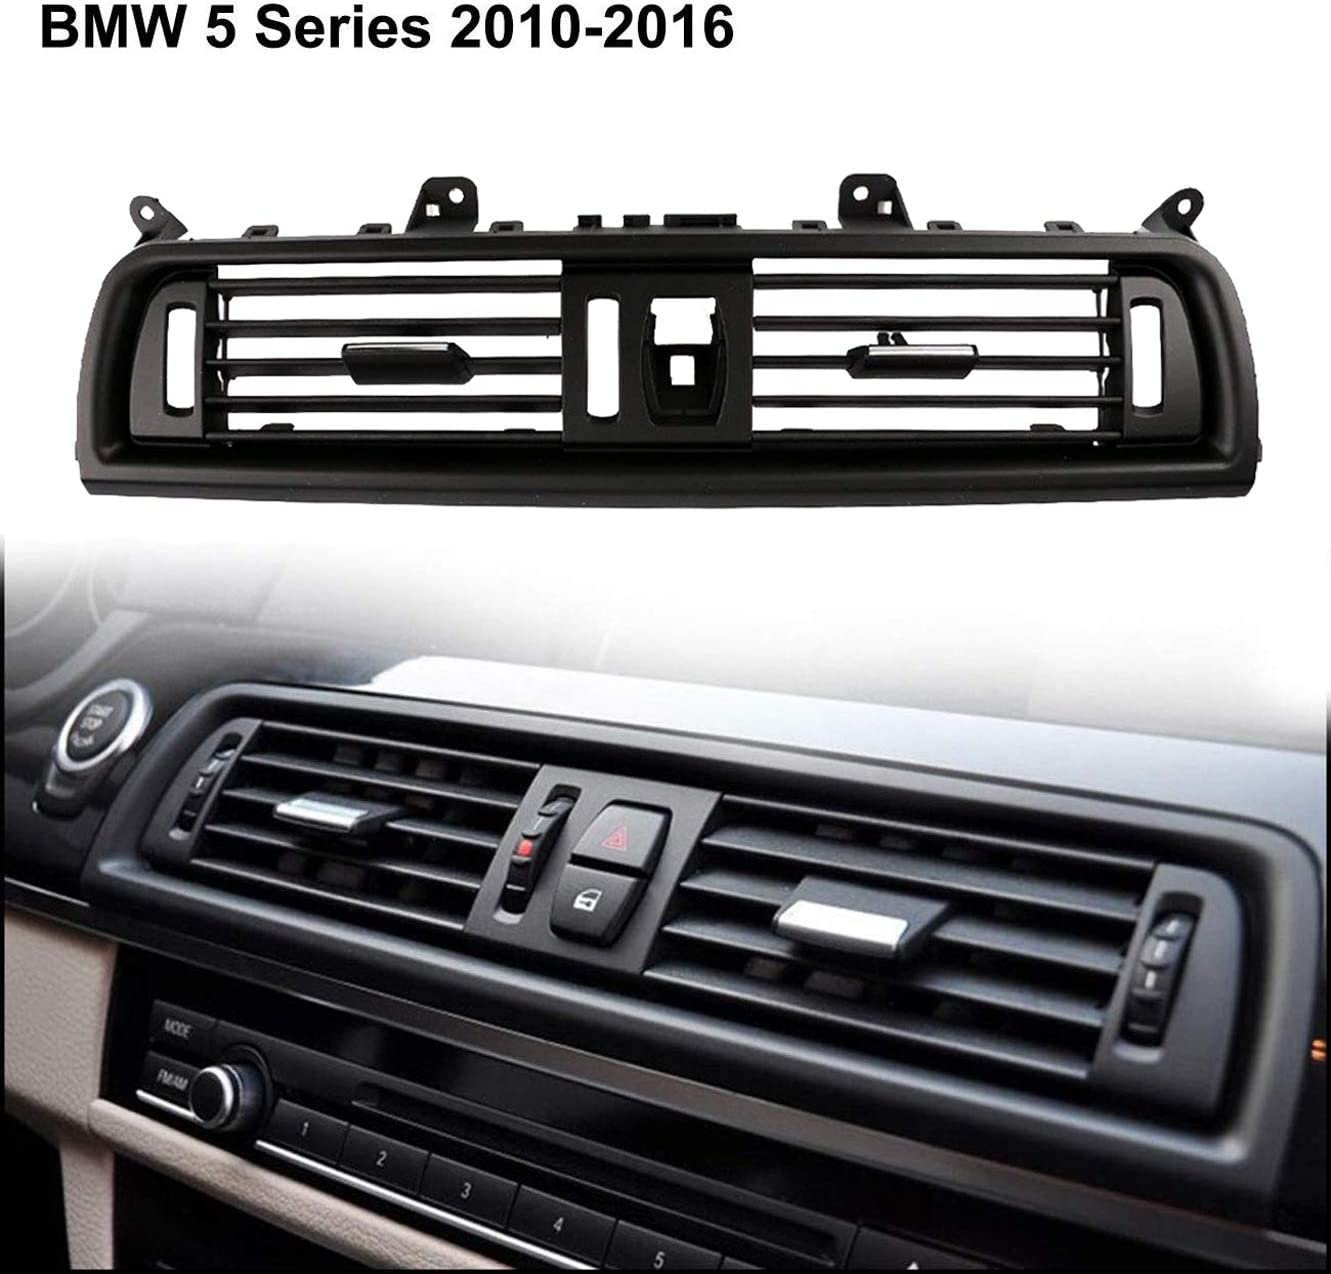 Left-Chrome ALAVENTE Front Air Grille Console Grill Dashboard AC Air Conditioning Air Vent for BMW 5 Series 520 523 525 528 530 535 64229166883